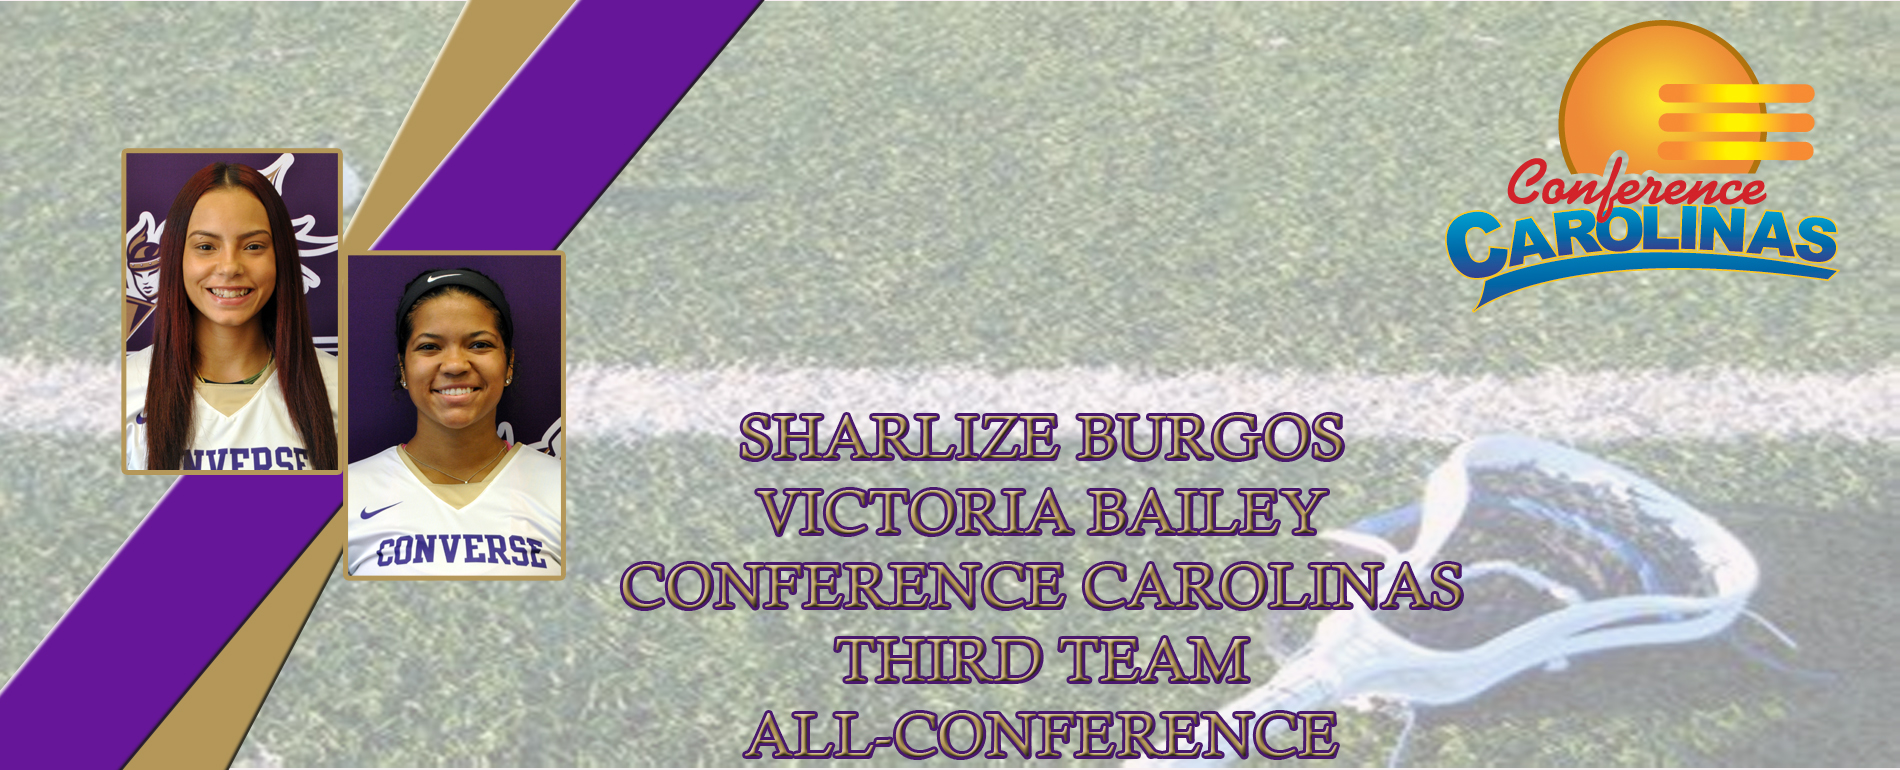 Bailey and Burgos Earn Lacrosse All Conference Selections